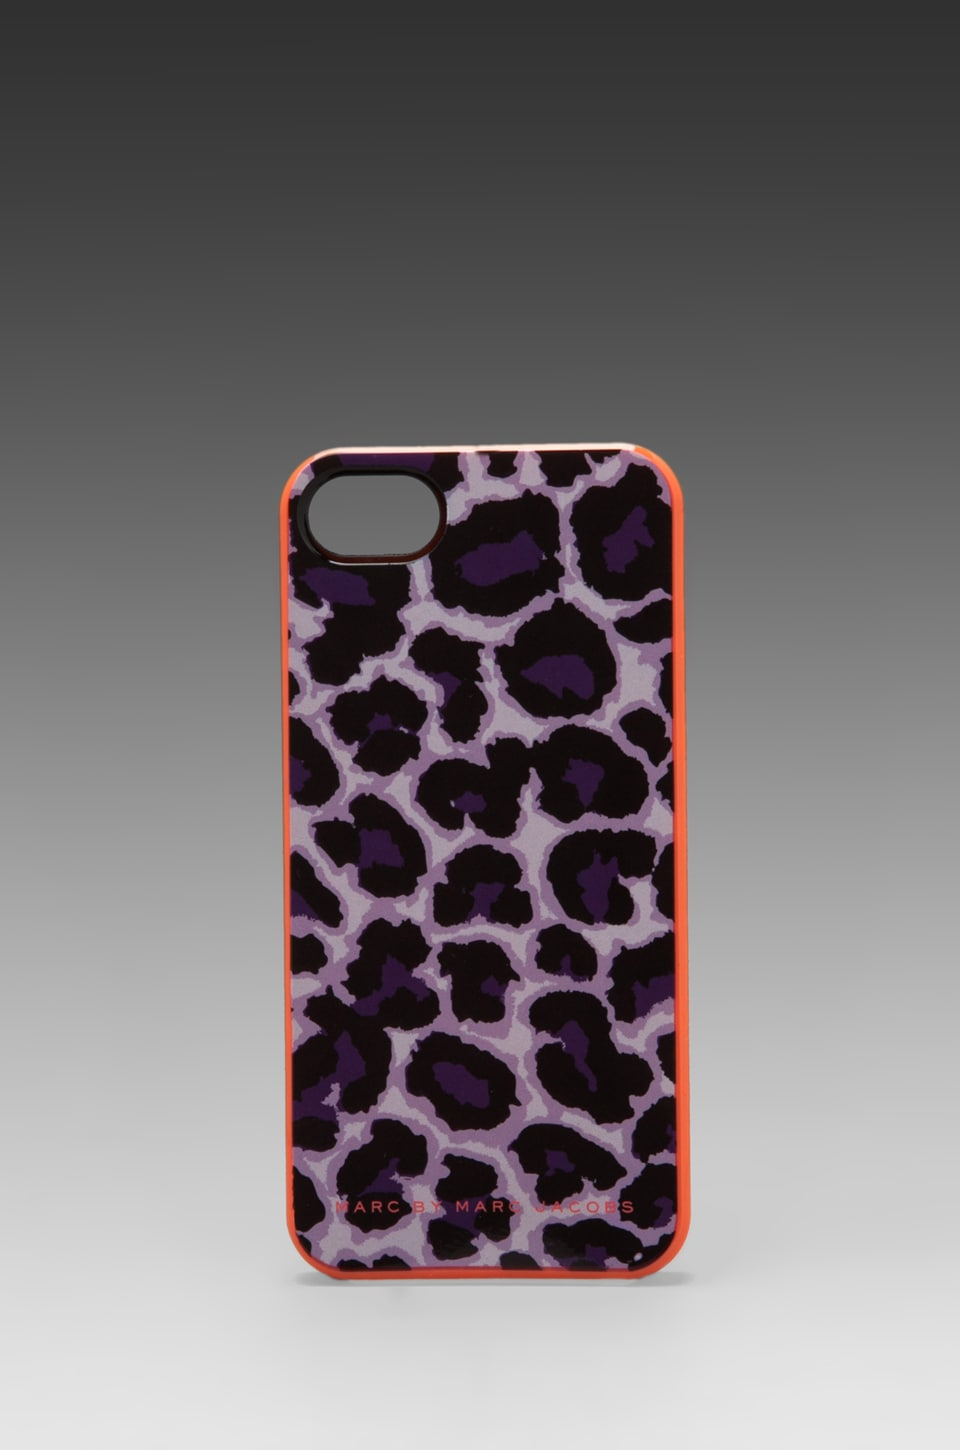 Marc by Marc Jacobs Lenora Leopard Phone Case in Royal Purple Multi